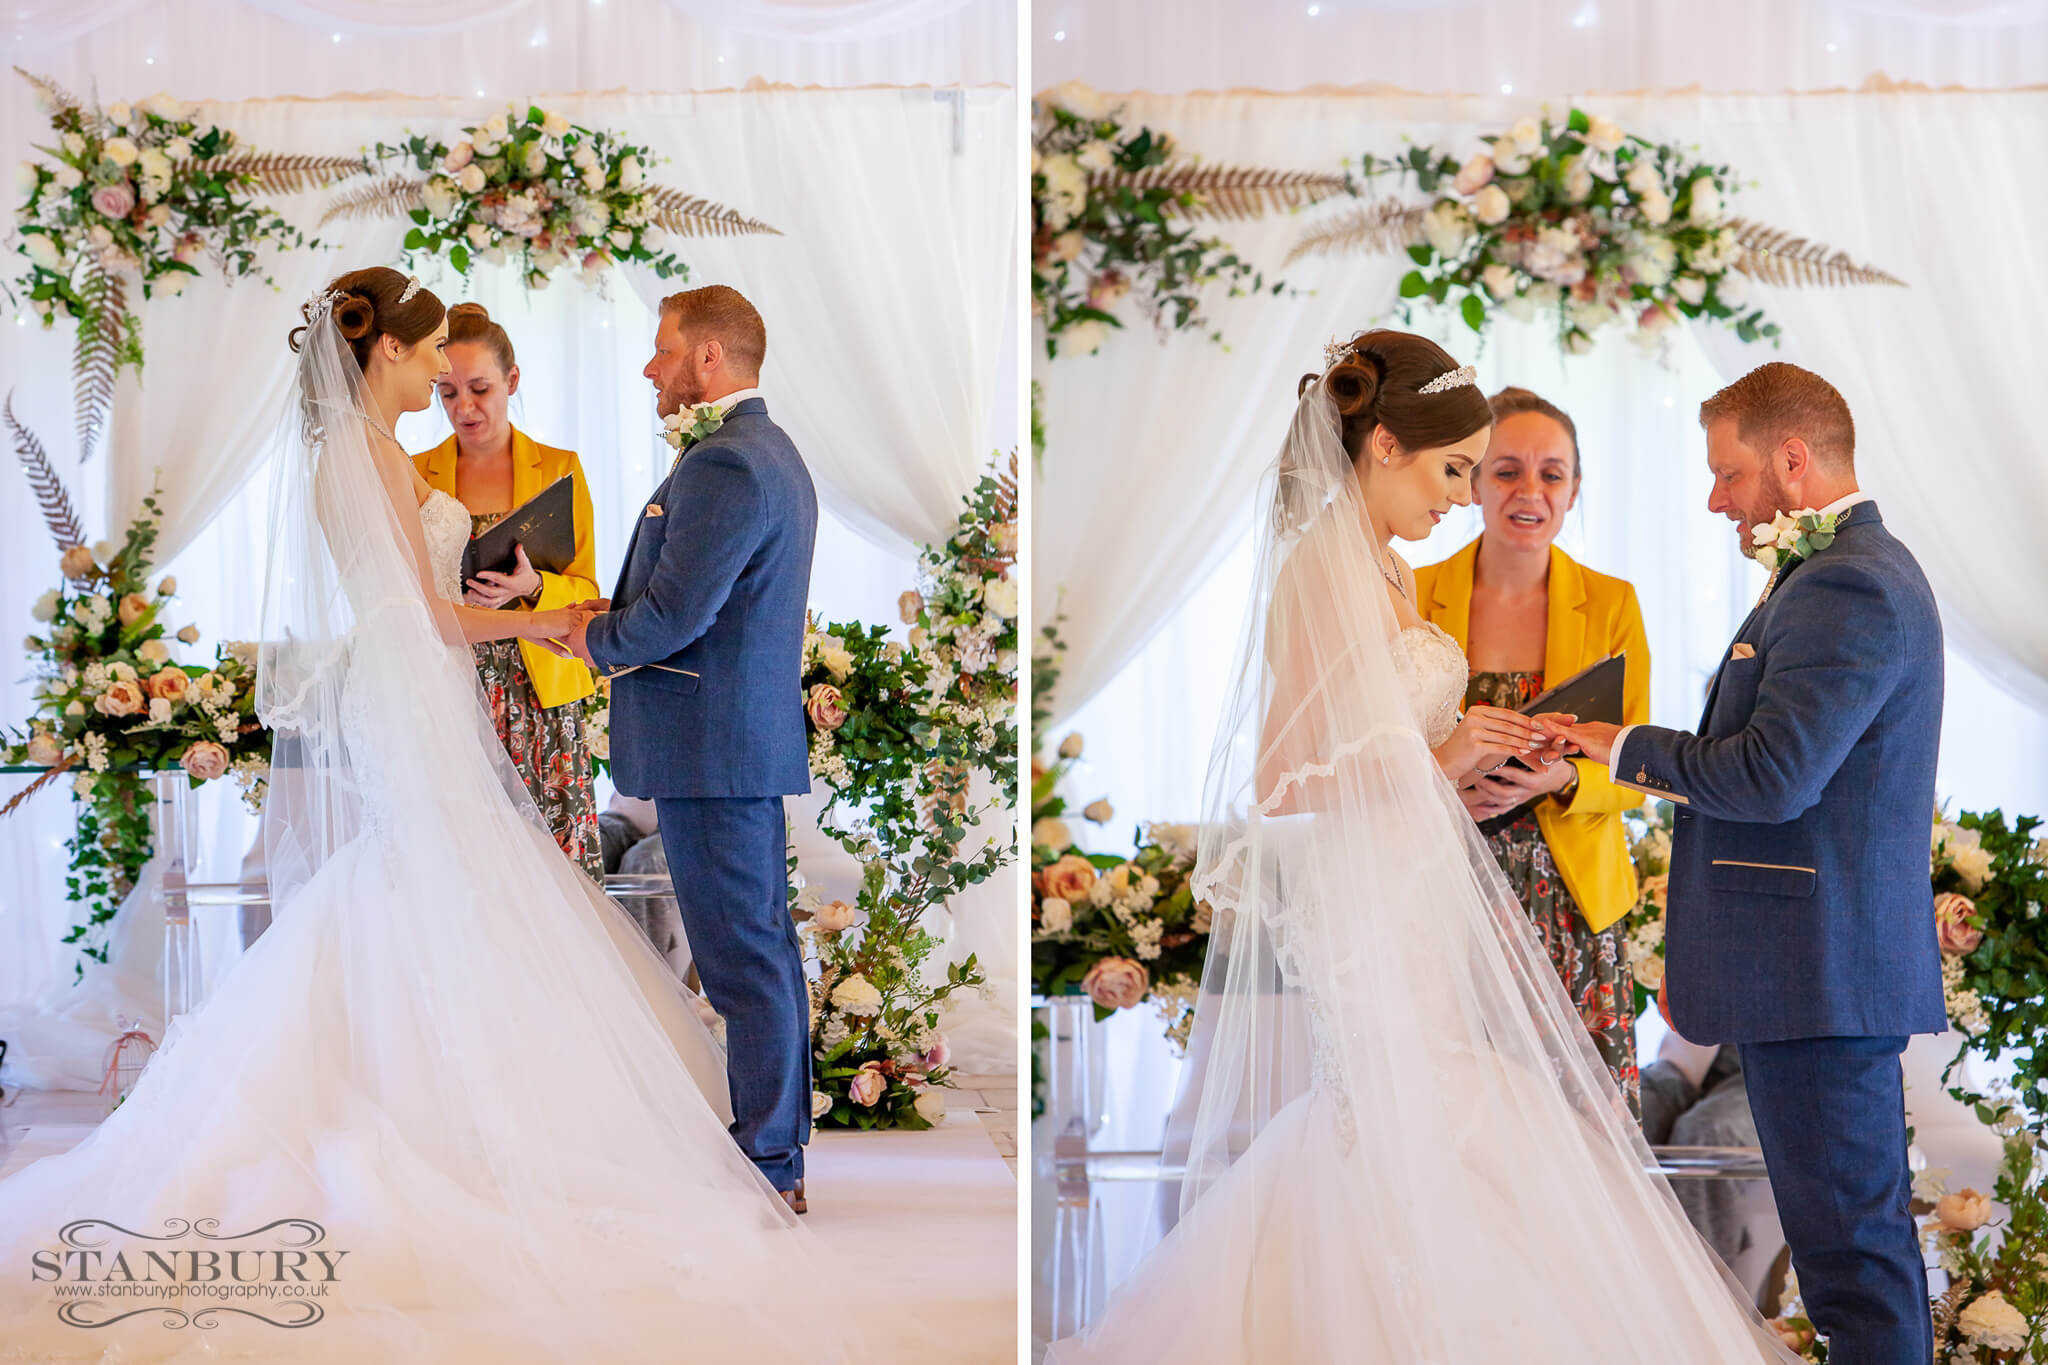 wedding-ceremony-bride-groom-colshaw-hall-cheshire-photographers-stanbury